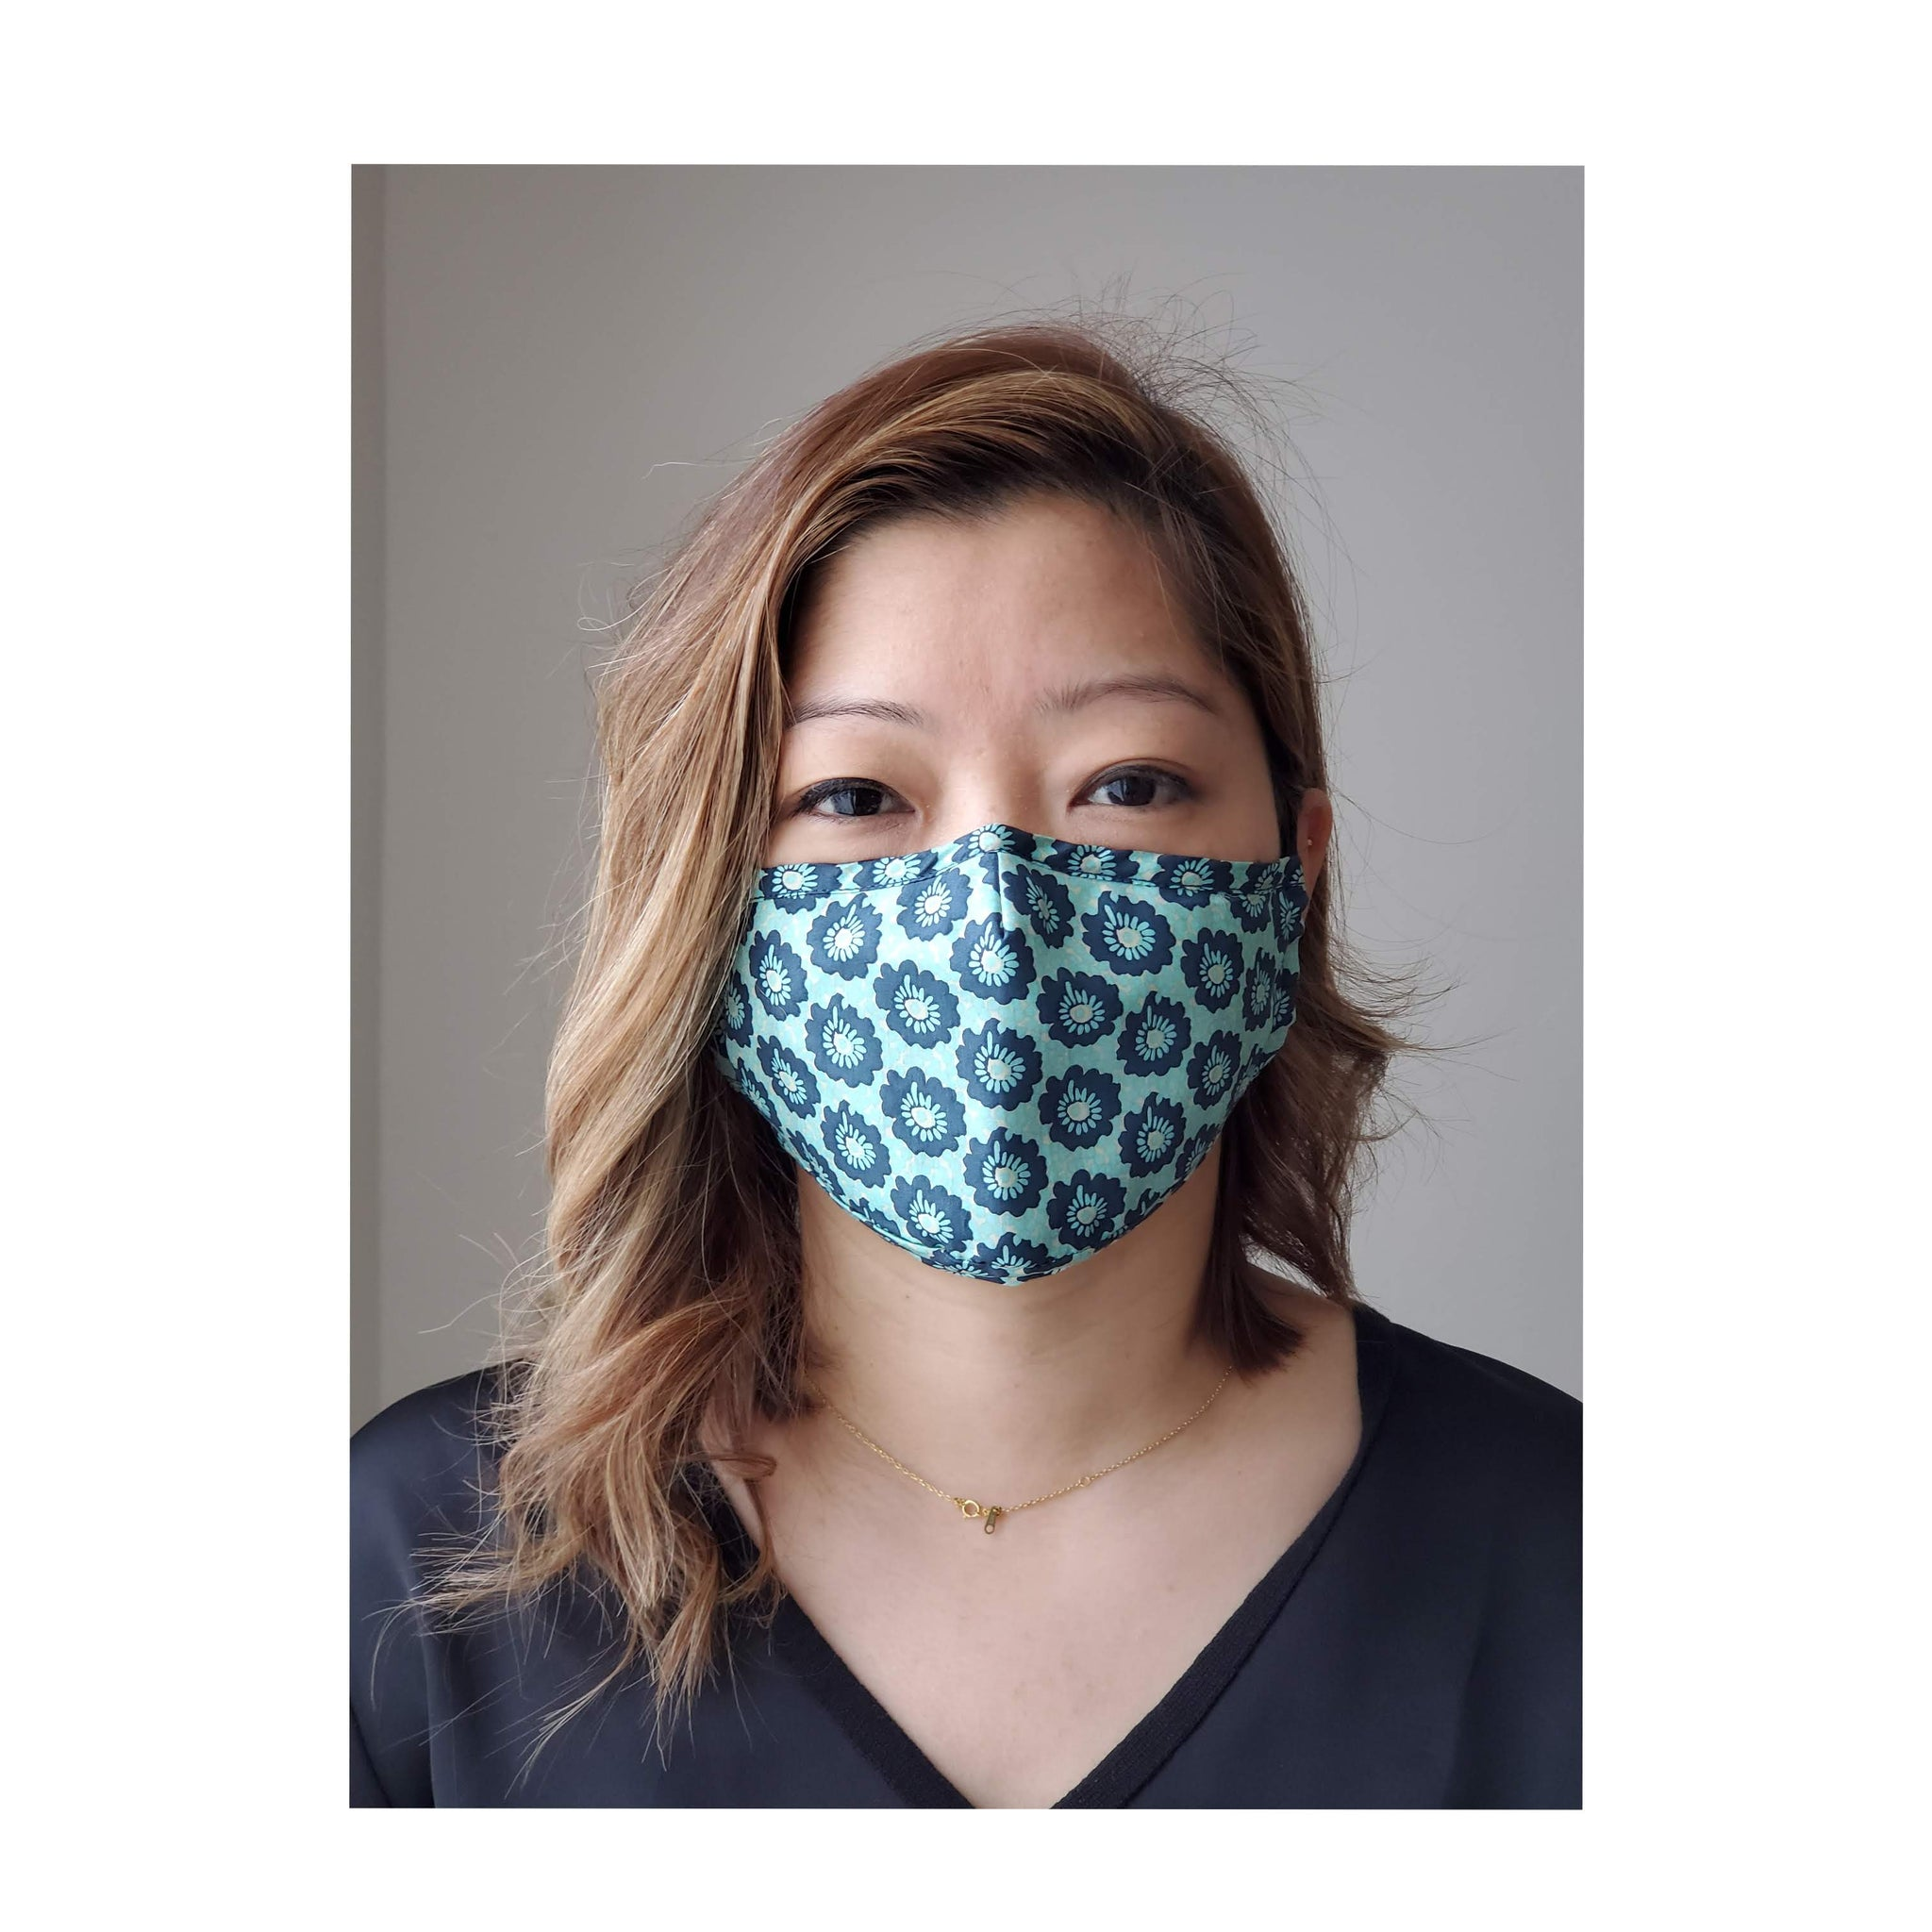 woman wearing cute blue floral face mask